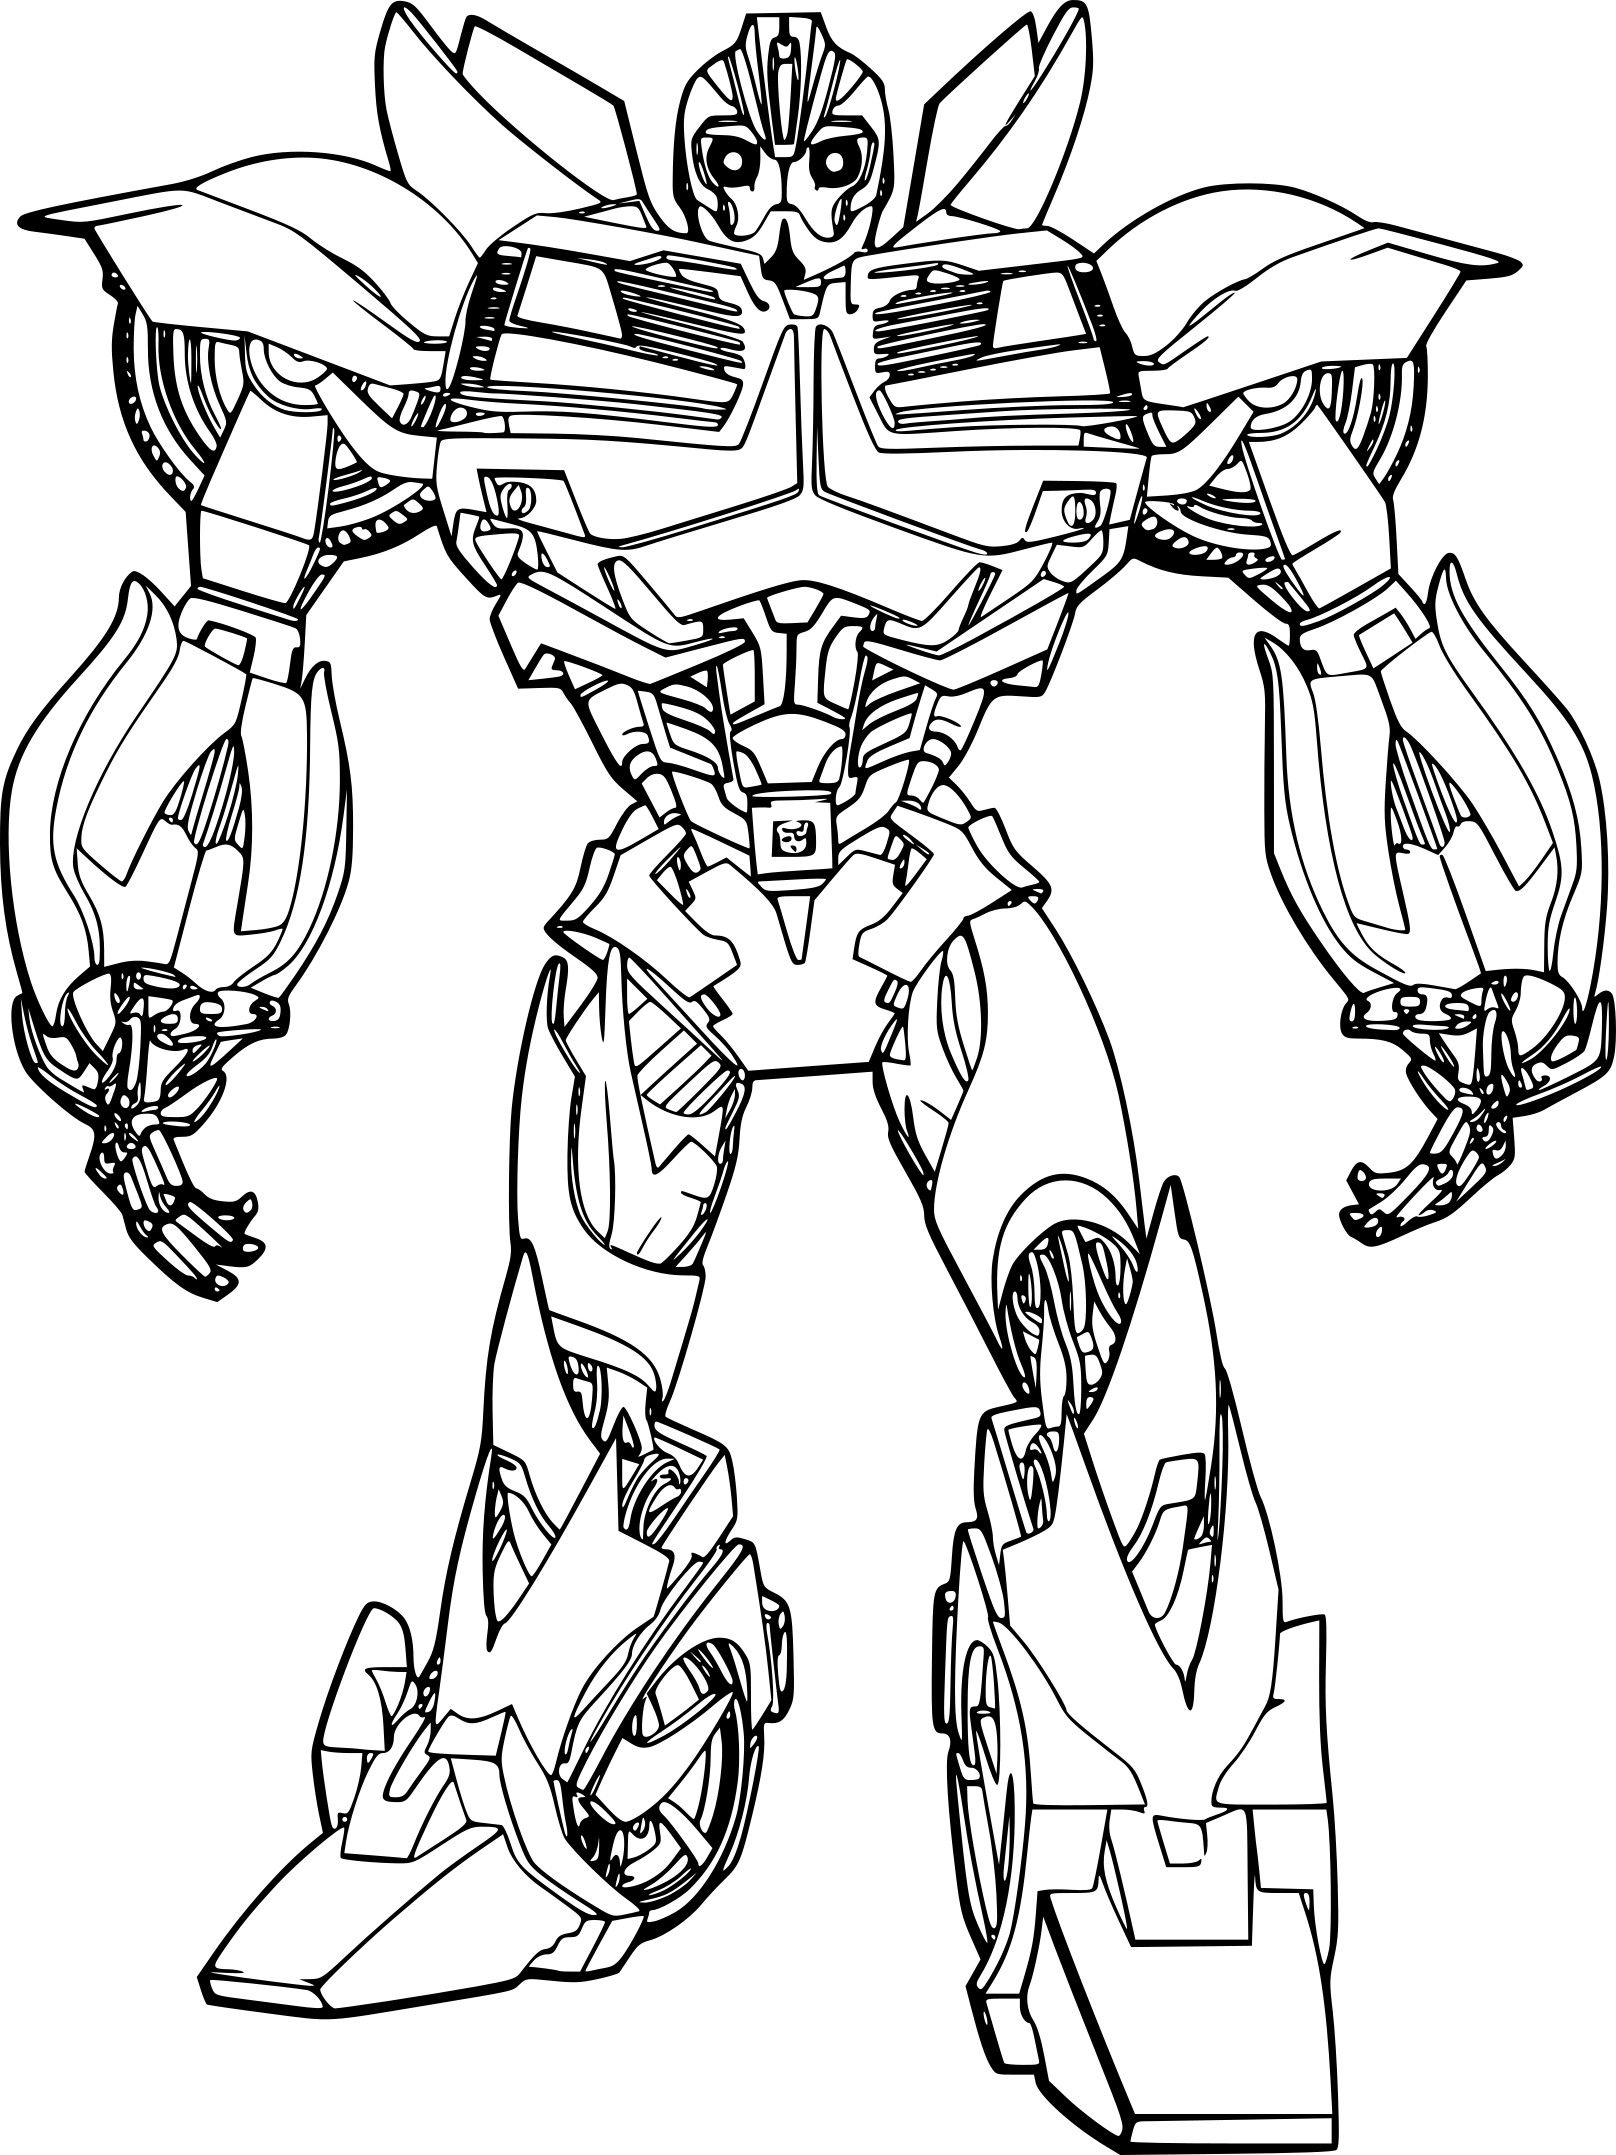 Dessin Transformers Bumblebee Dessin Transformers Bumblebee